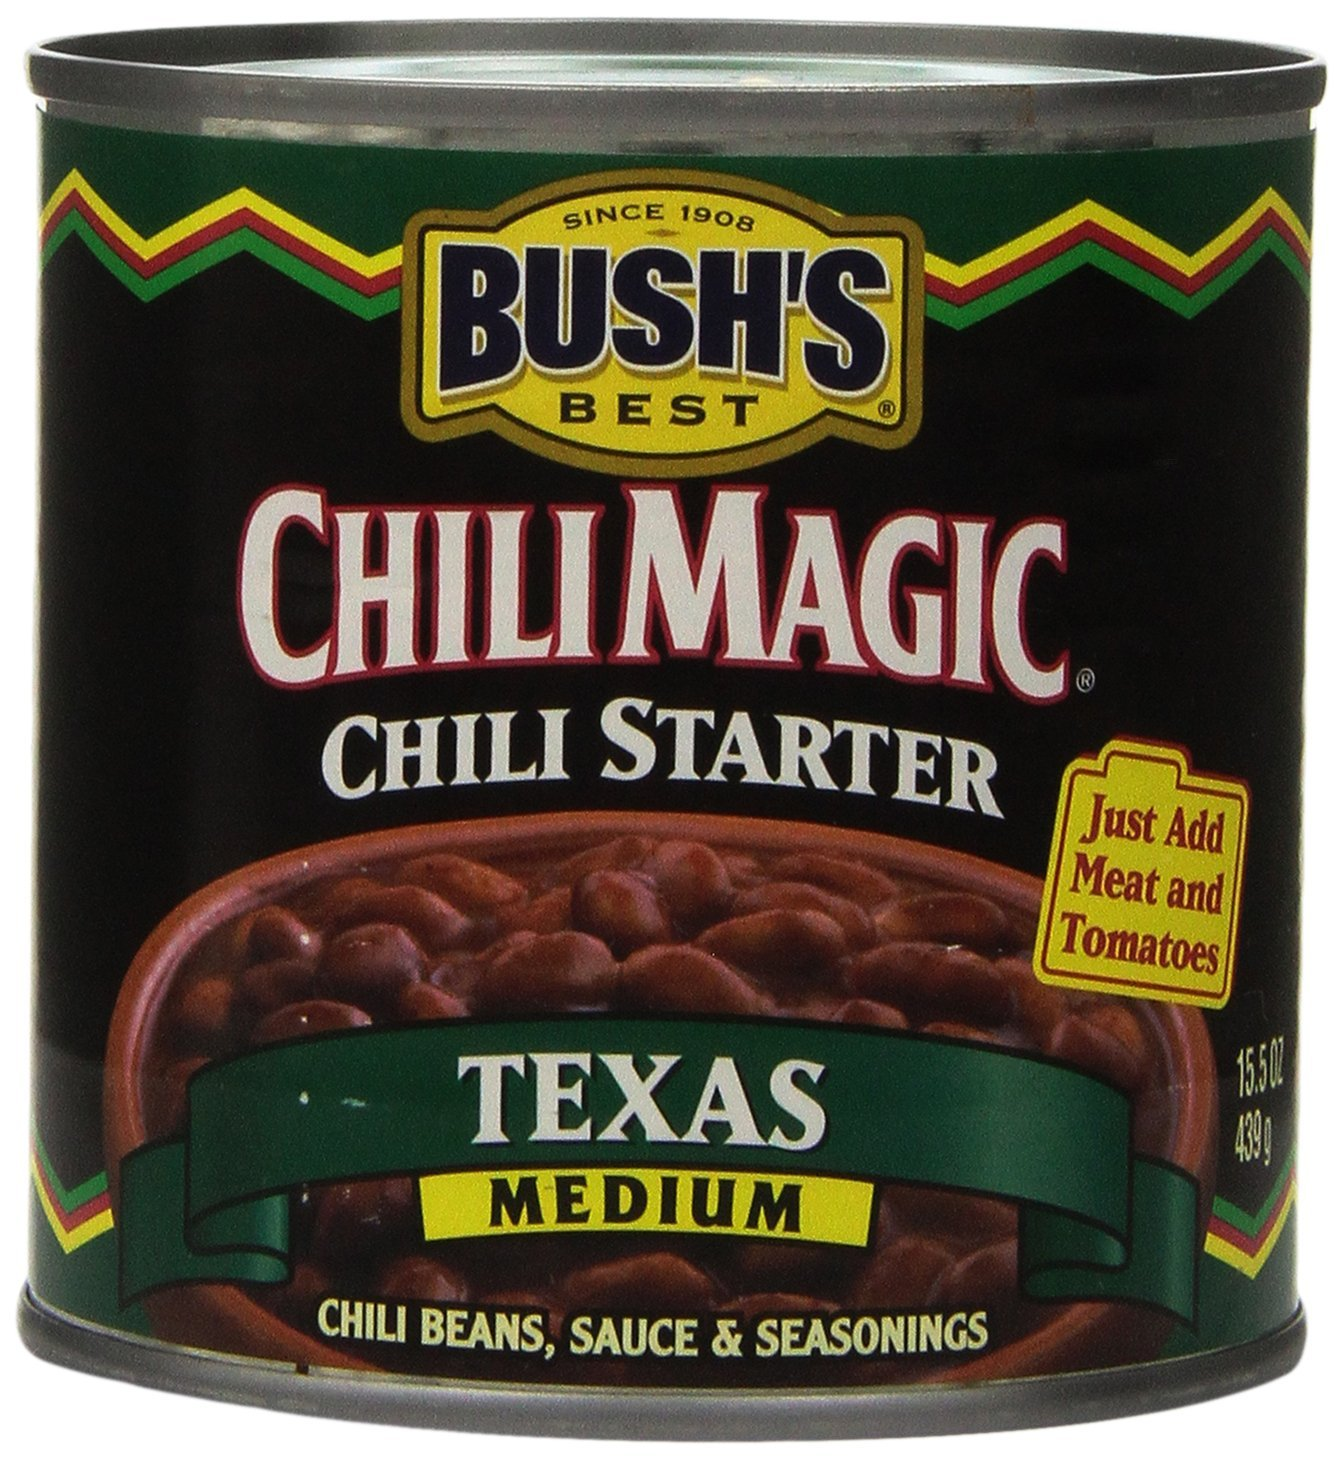 Bush's Best Chili Beans Texas Medium Chili Starter (Case of 12) - Buy Fast delivery